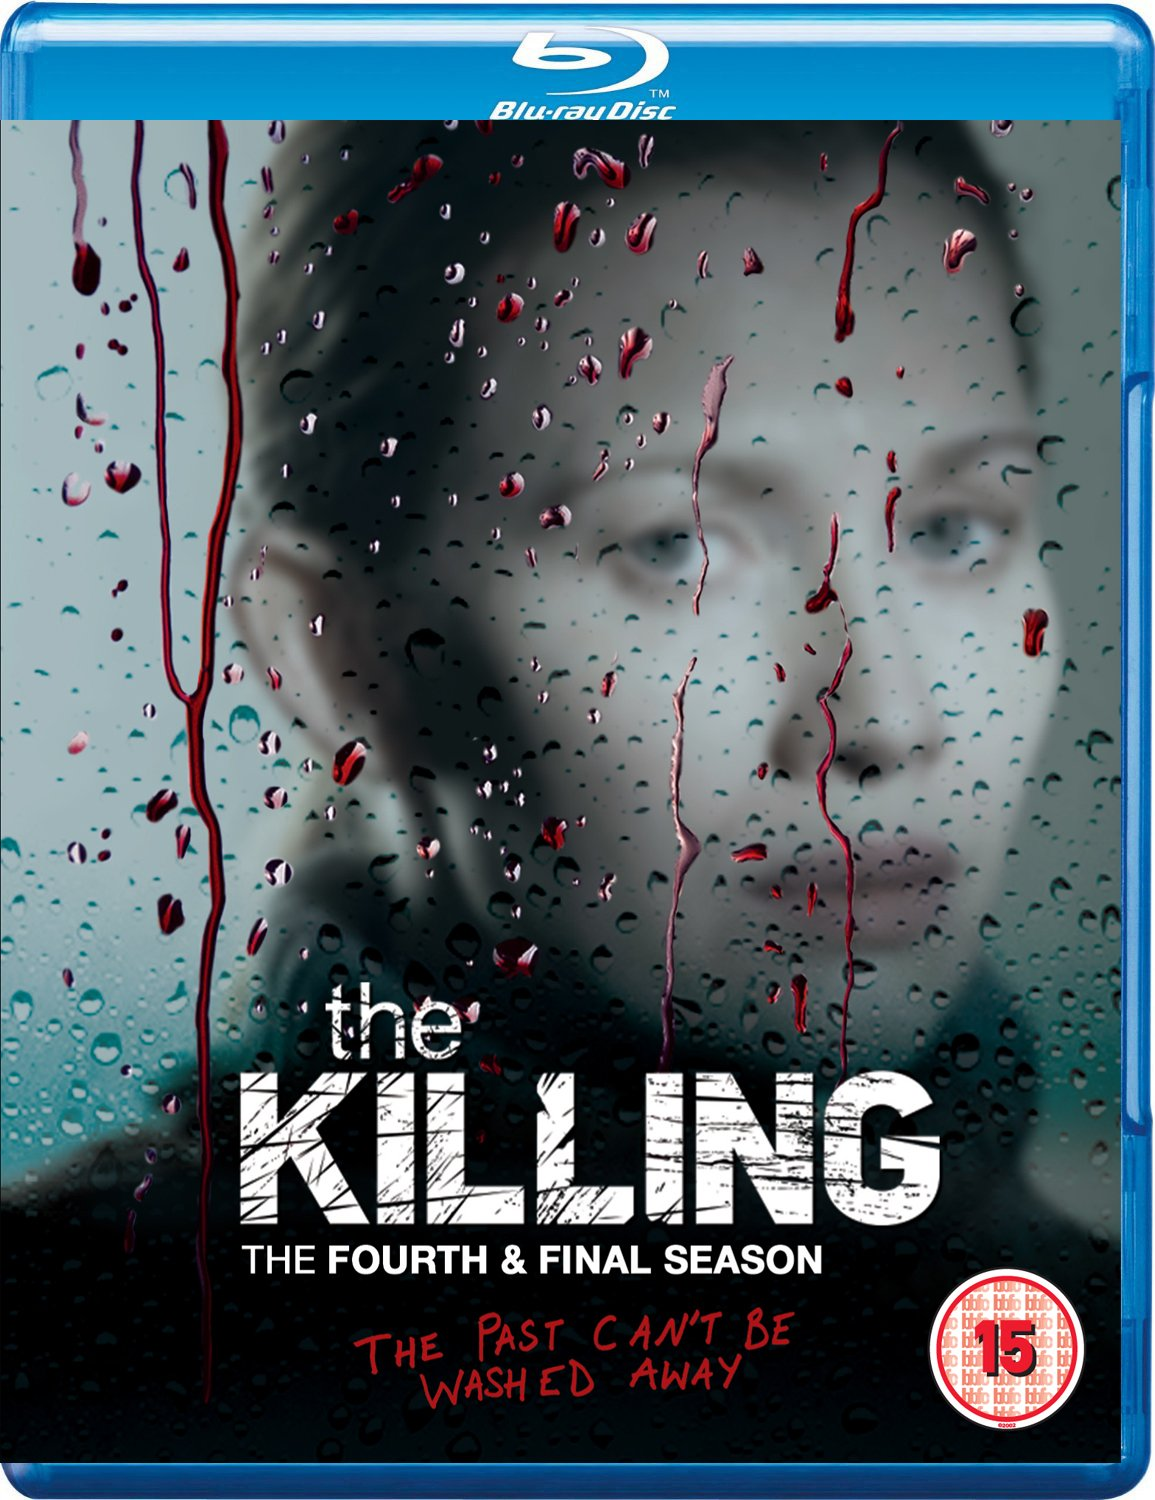 The Killing (US version) Season 4 coming to blu-ray (August